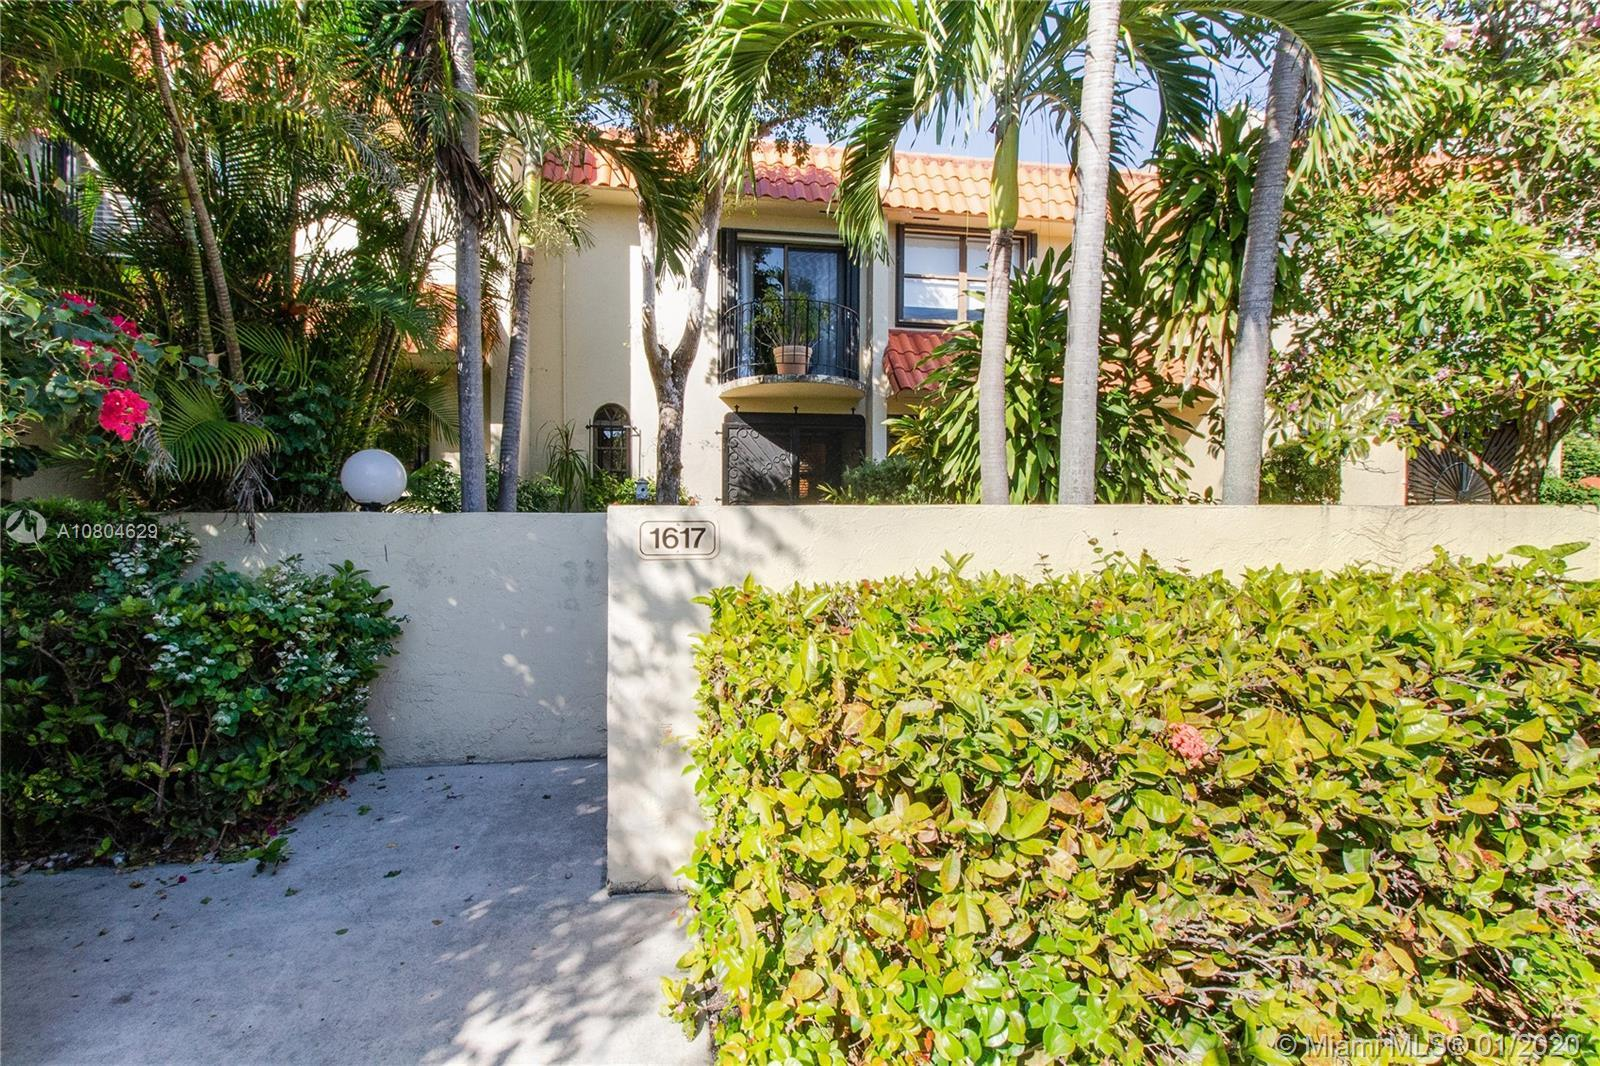 Meticulously maintained townhome located in beautiful Miami Shores!  This spacious townhome features